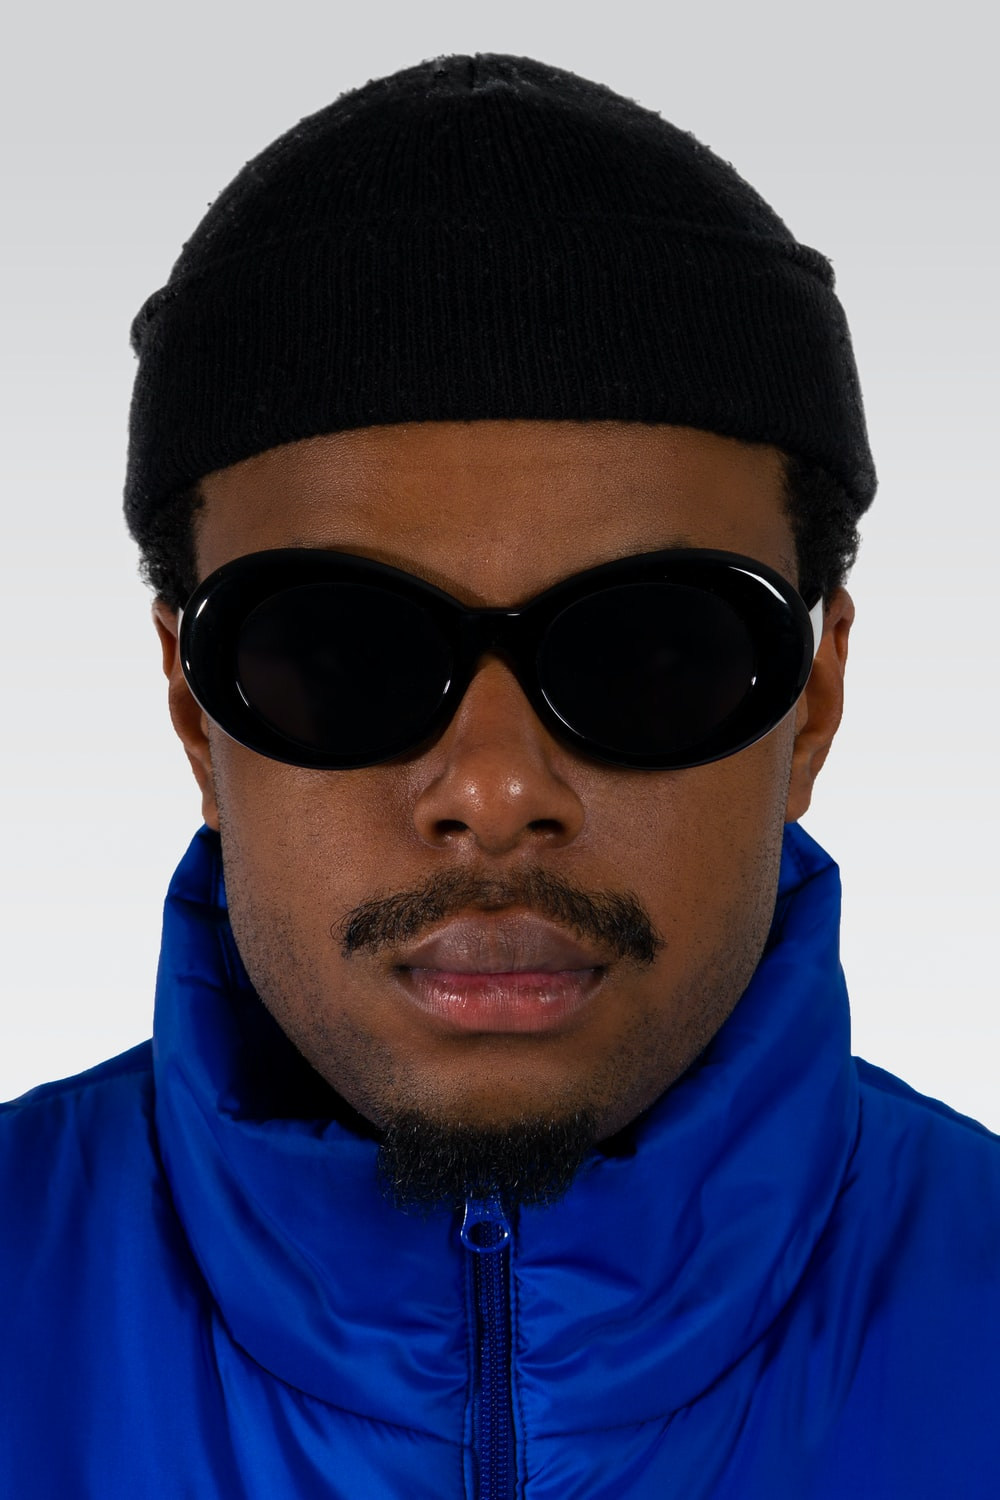 man in blue jacket wearing black knit cap and black sunglasses